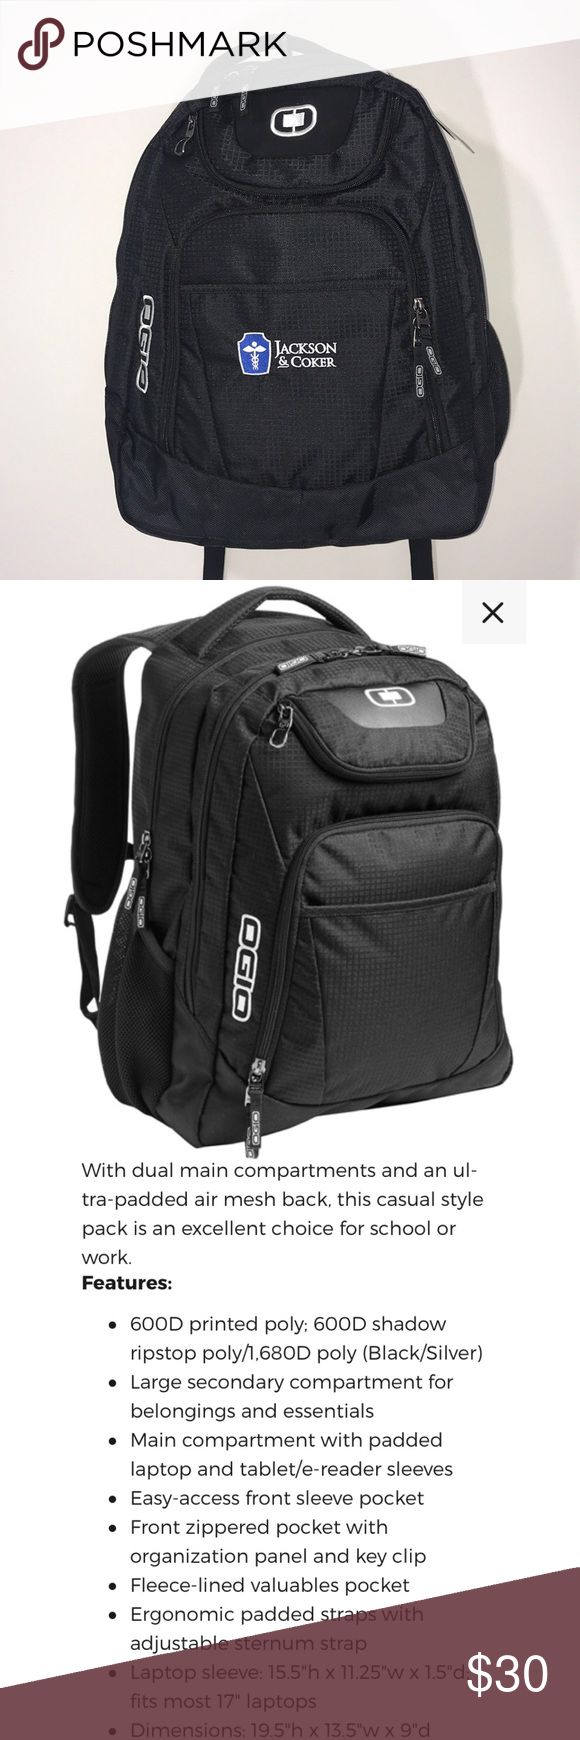 Ogio Excelsior Pack Backpack Embroidered Logo • Brand new with tags but DOES have my company logo embroidered on it {received this as part of our Christmas presents and I won't be using it} • Brand: OGIO • Style: Excelsior Pack • Tons of room & pockets OGIO Bags Backpacks